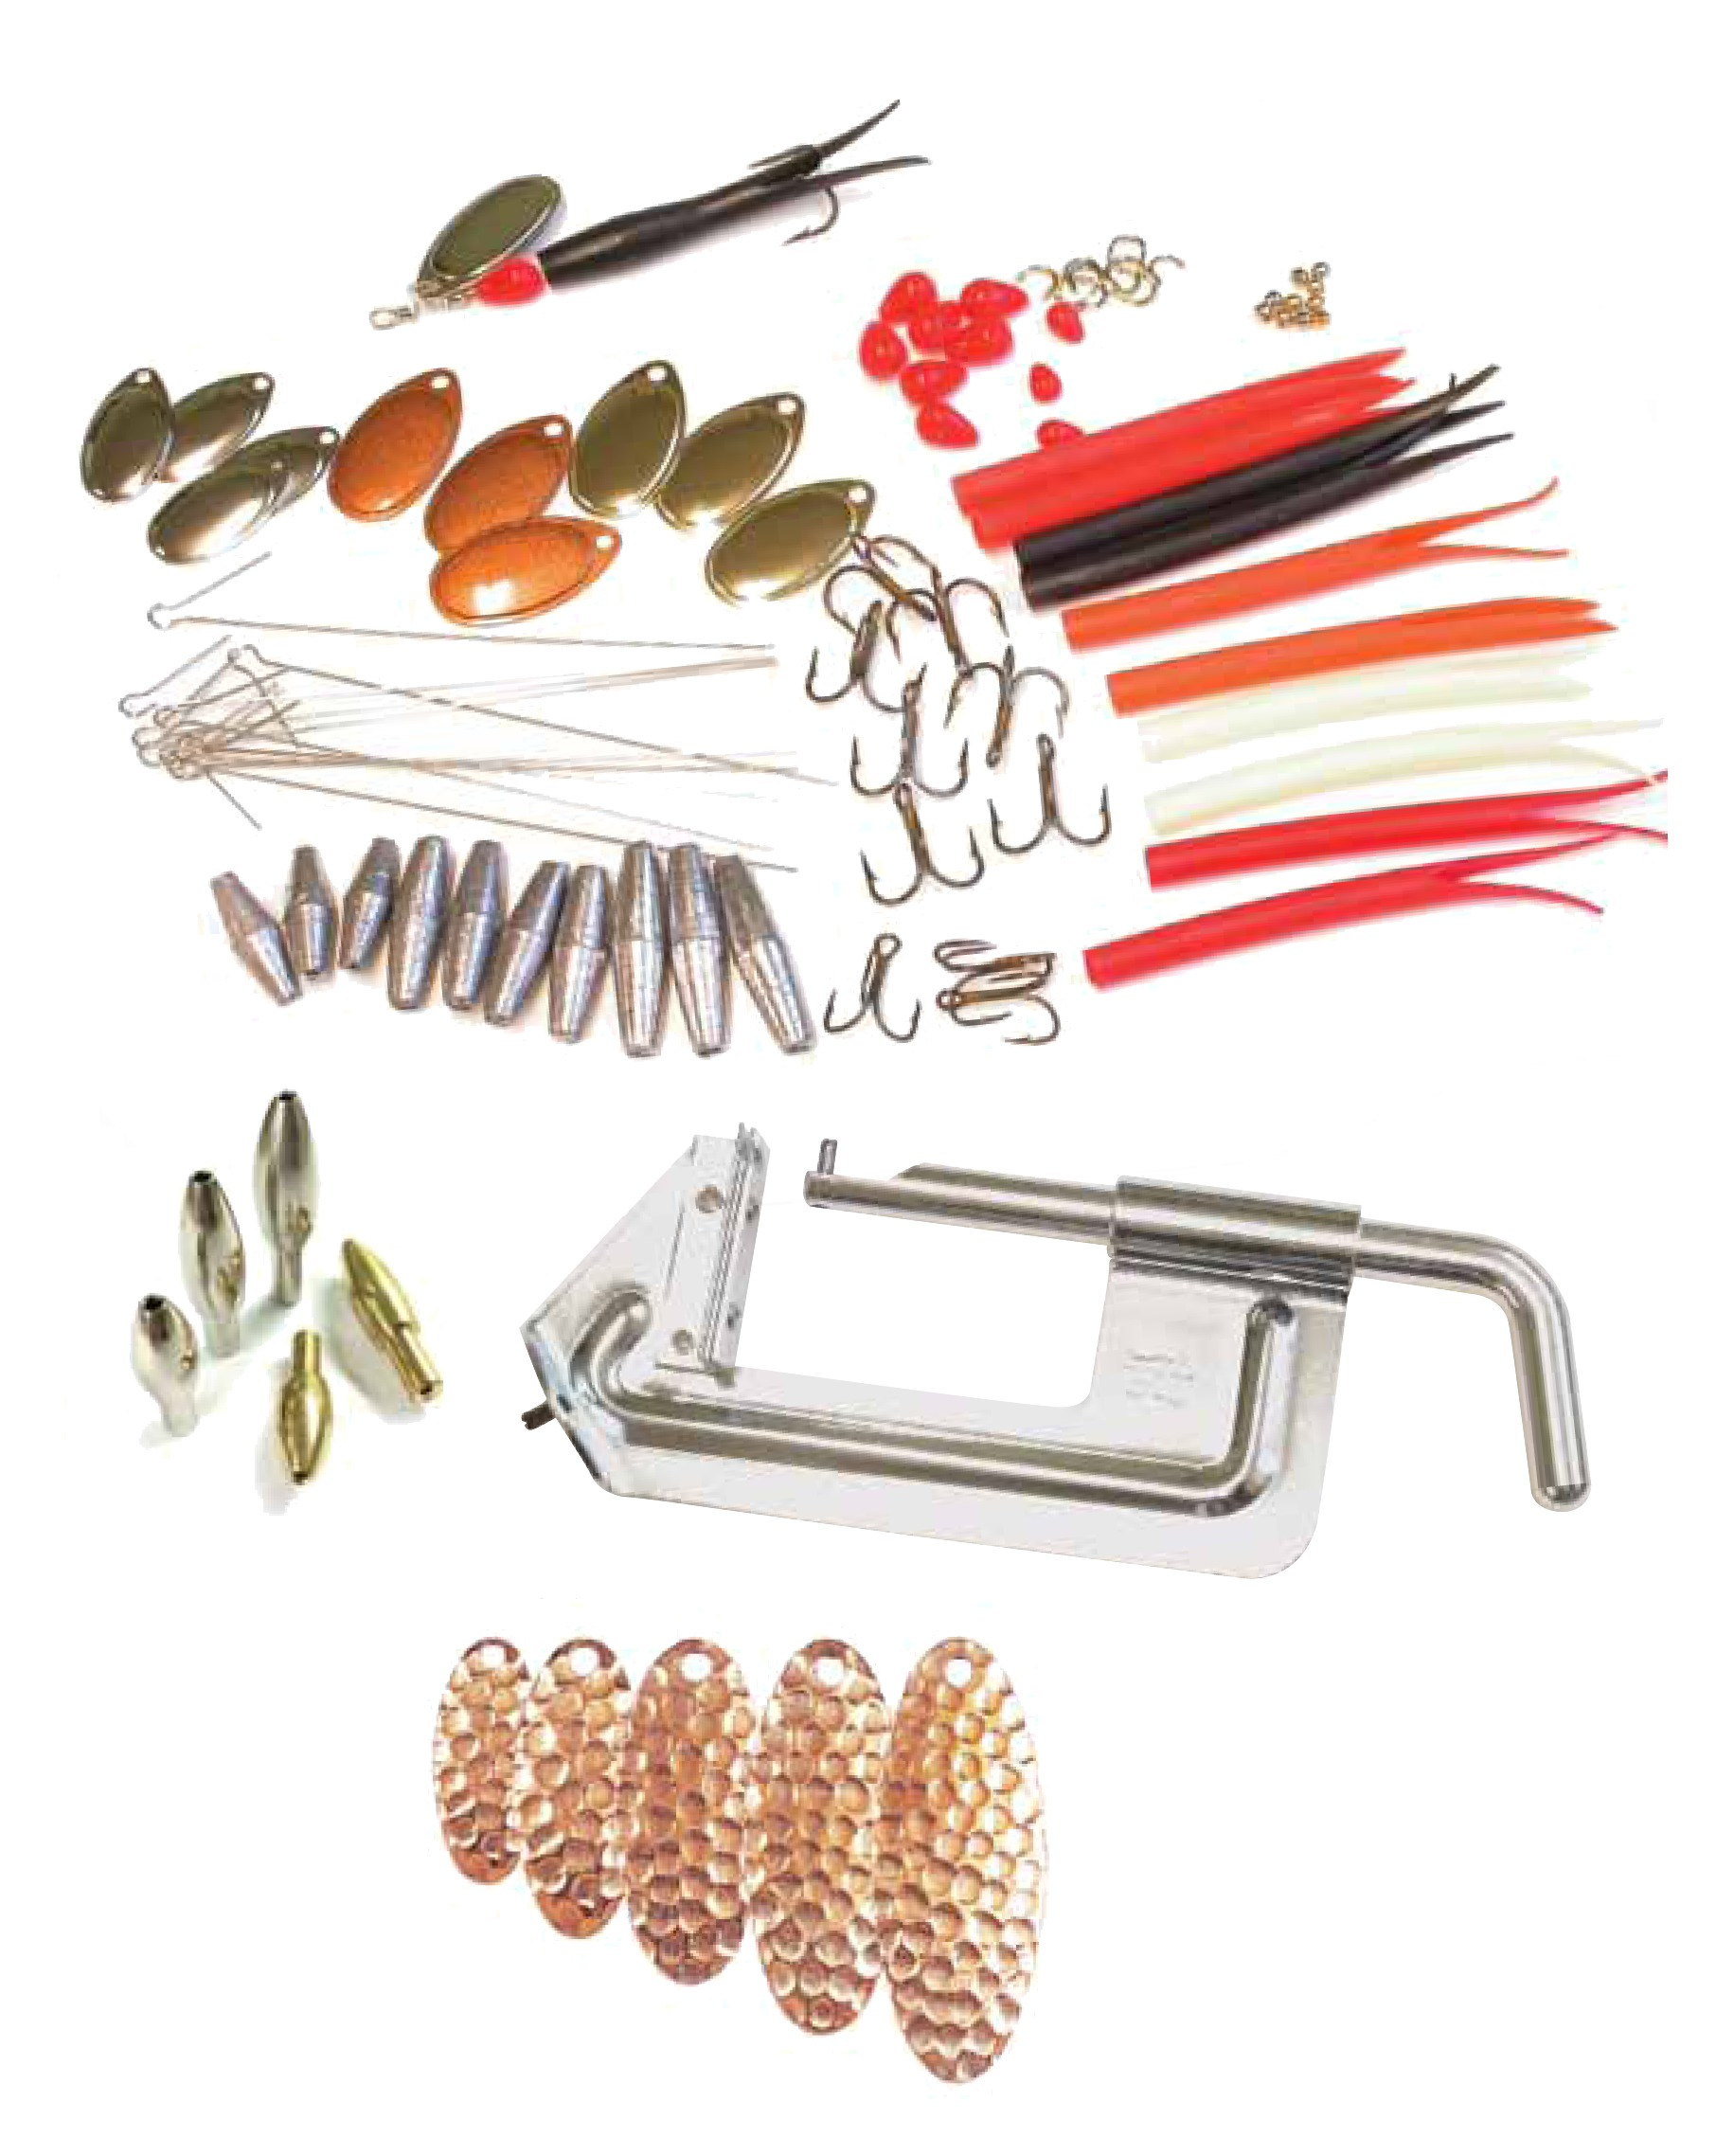 Reuben heaton flying c spinner kits glasgow angling centre for Fishing lure kits